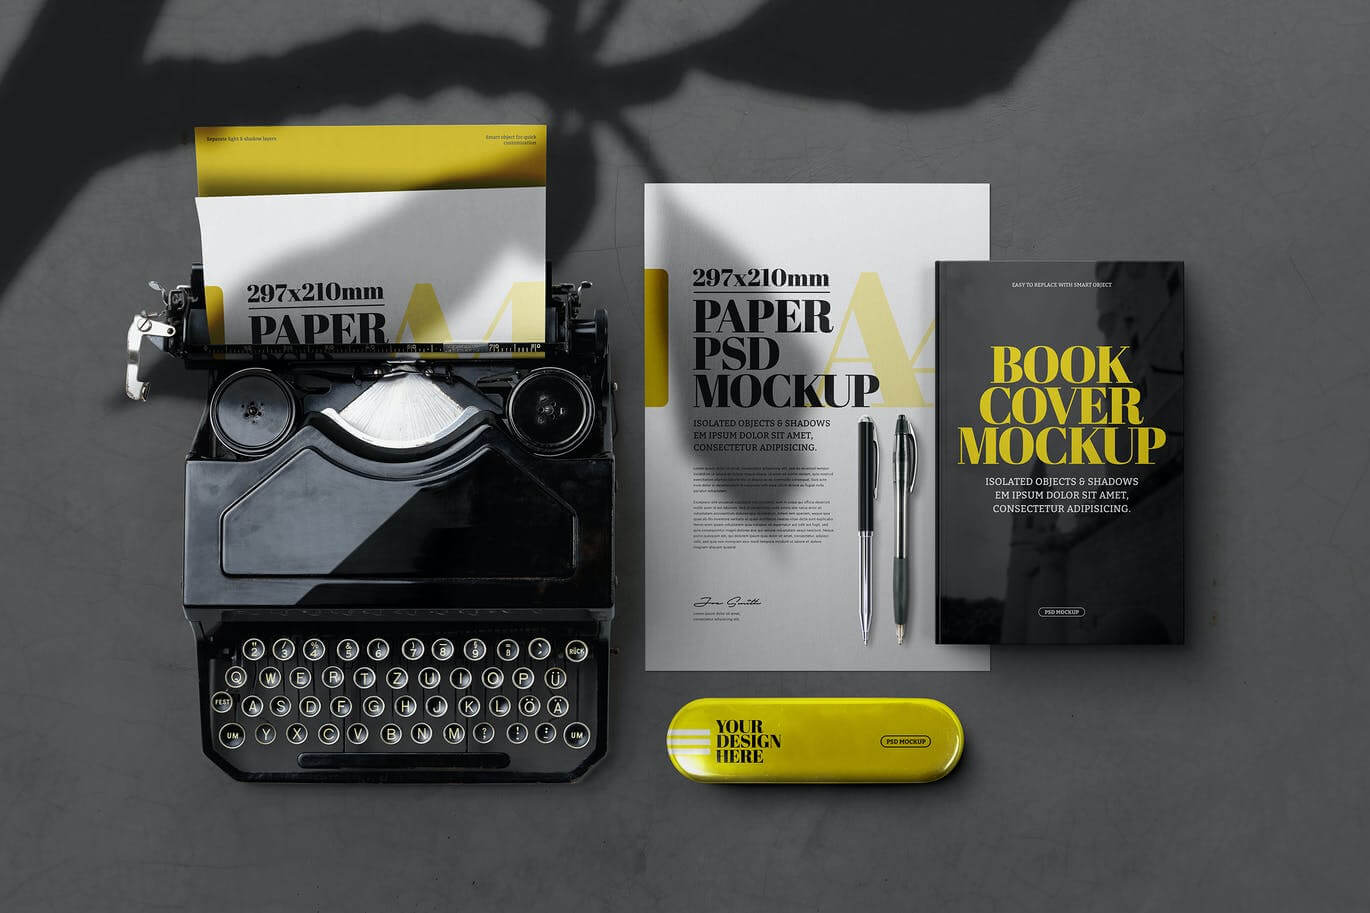 Stationery A4 Old Typewriter Book Cover Mockup